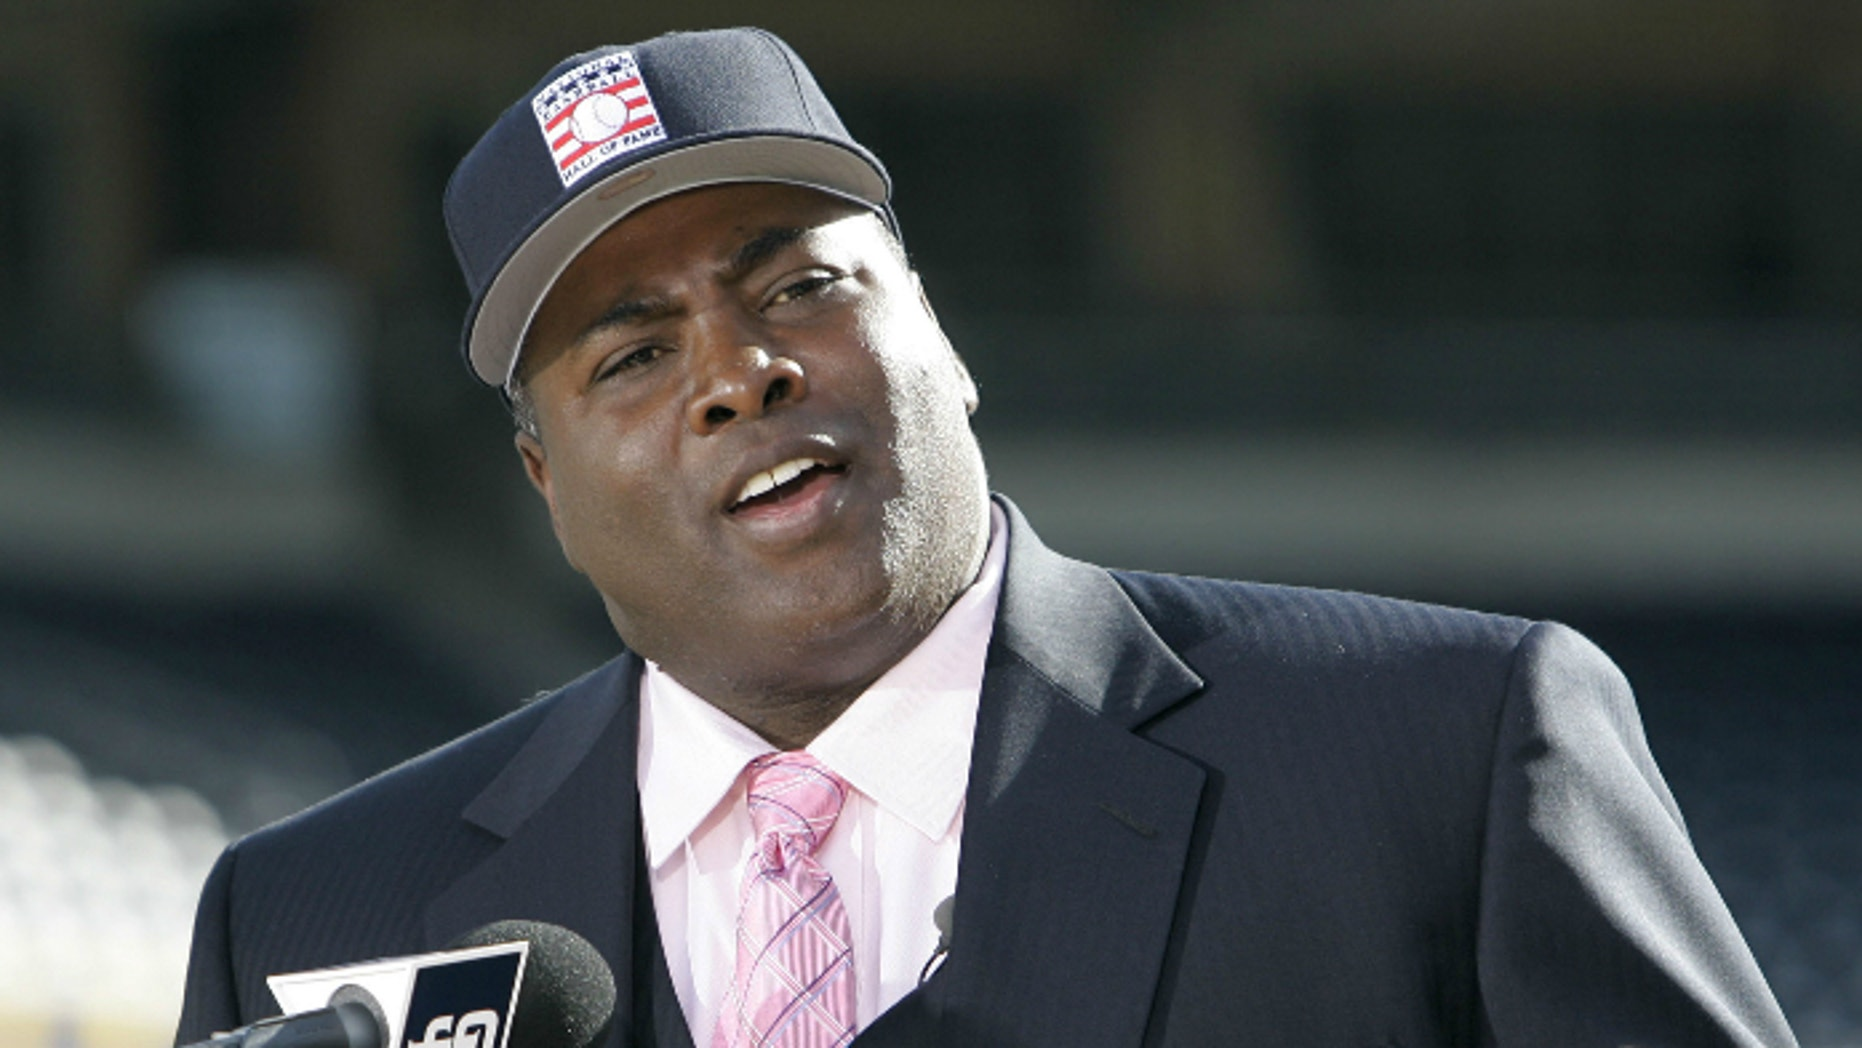 Tony Gwynn's cancer: How smokeless tobacco can contribute to